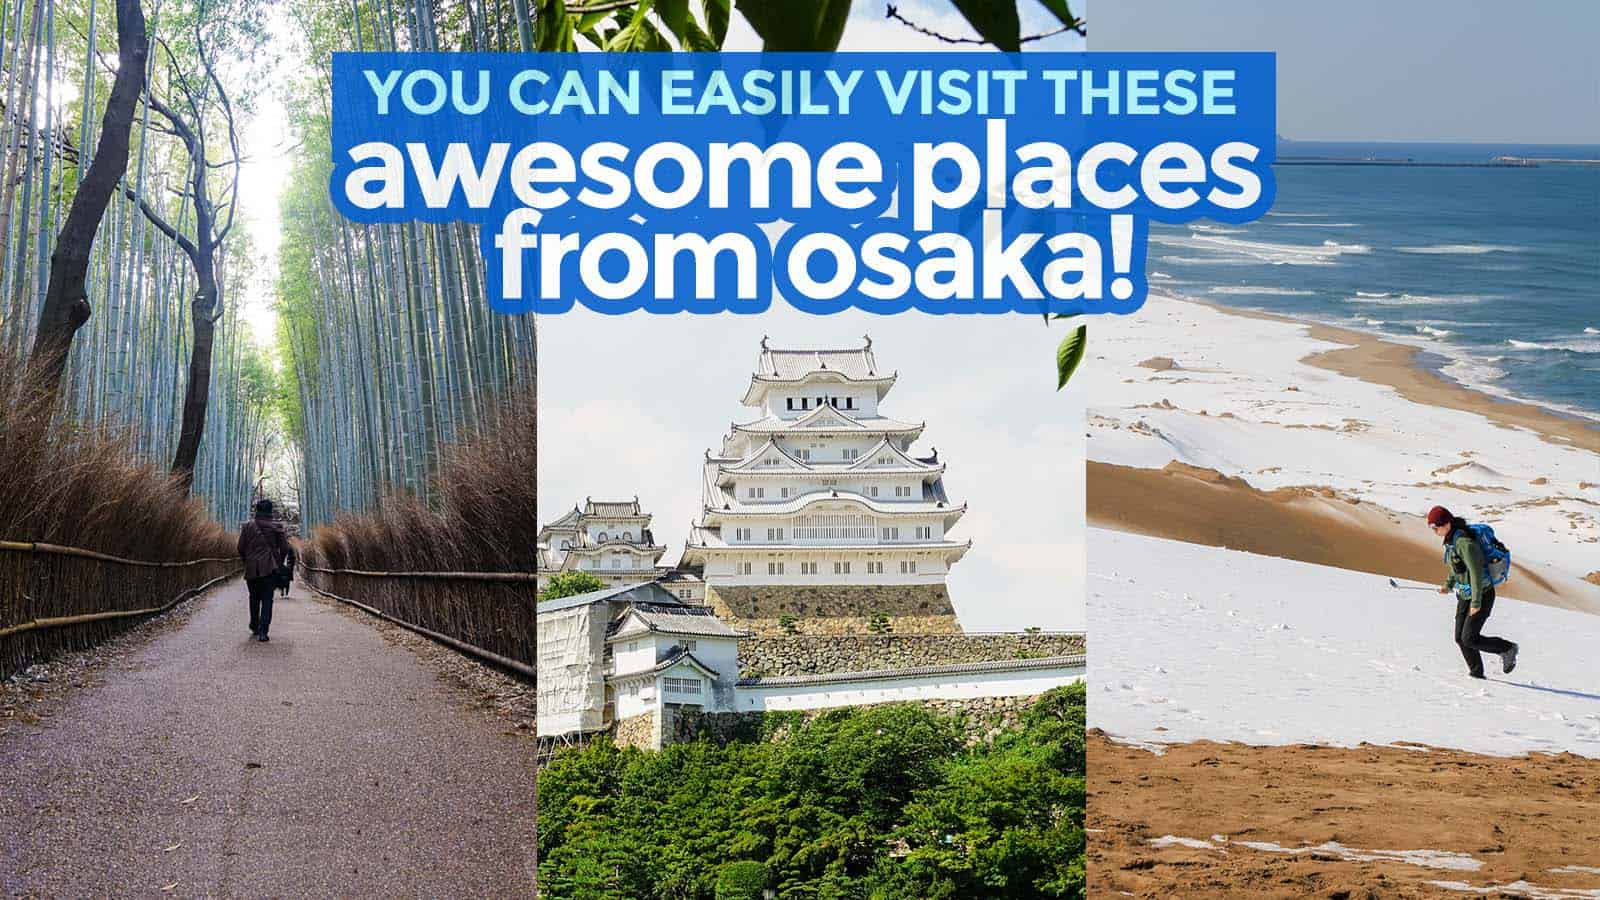 7 DESTINATIONS YOU CAN EASILY VISIT FROM OSAKA